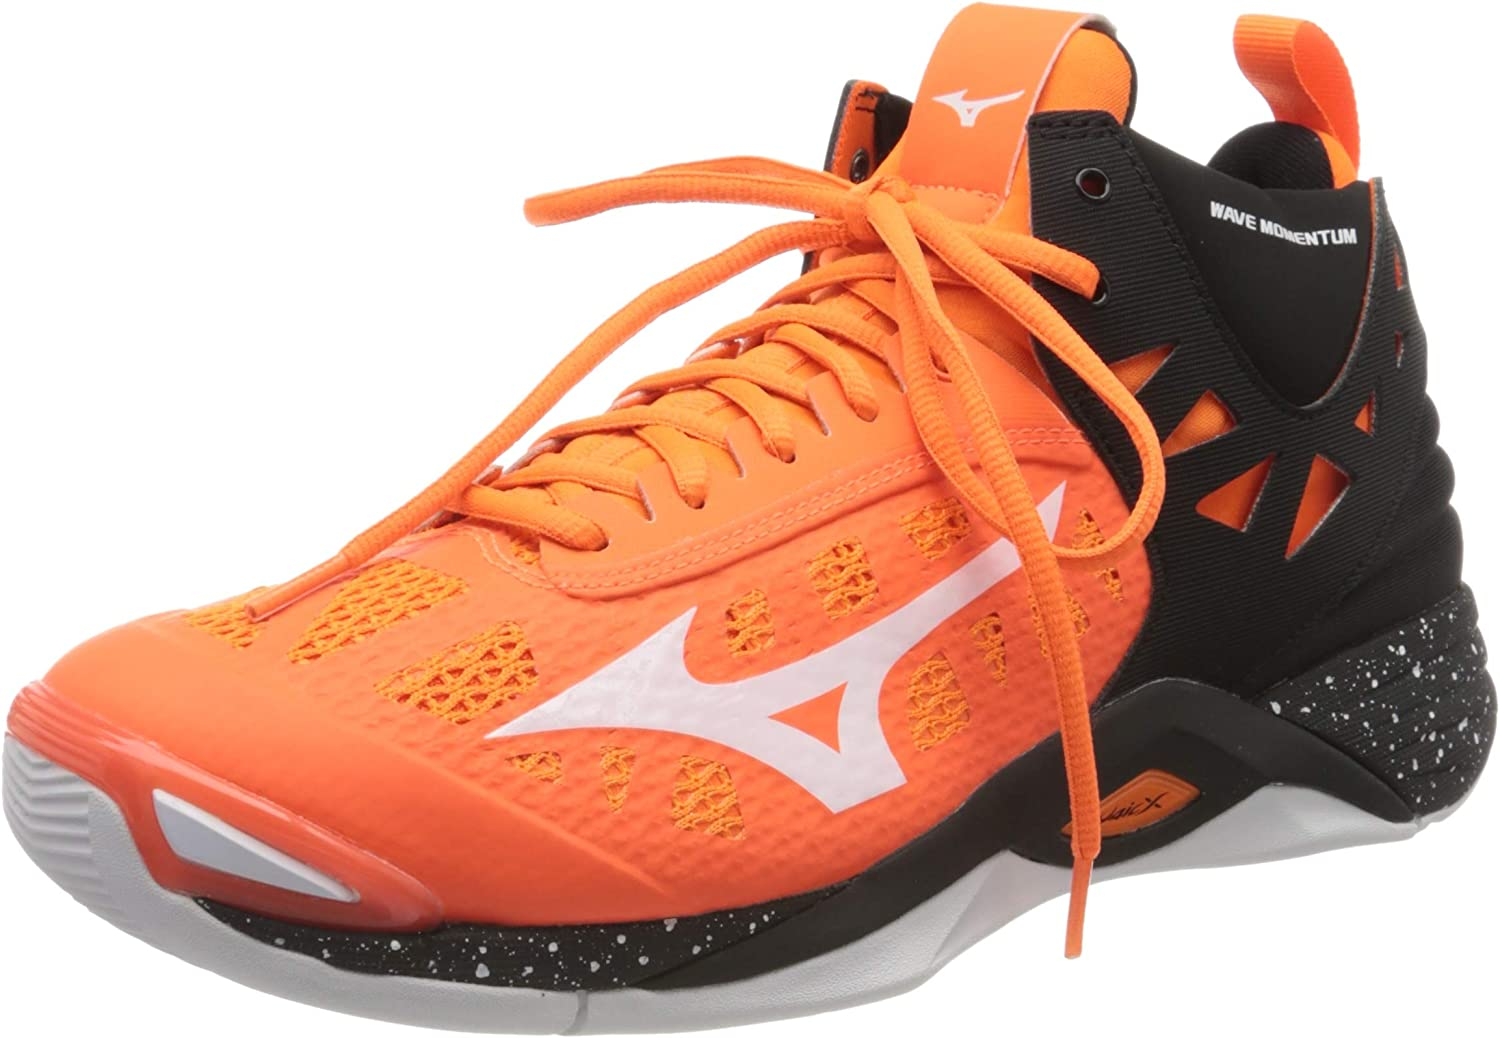 Chaussures de Volleyball Mixte Adulte Mizuno Wave Momentum